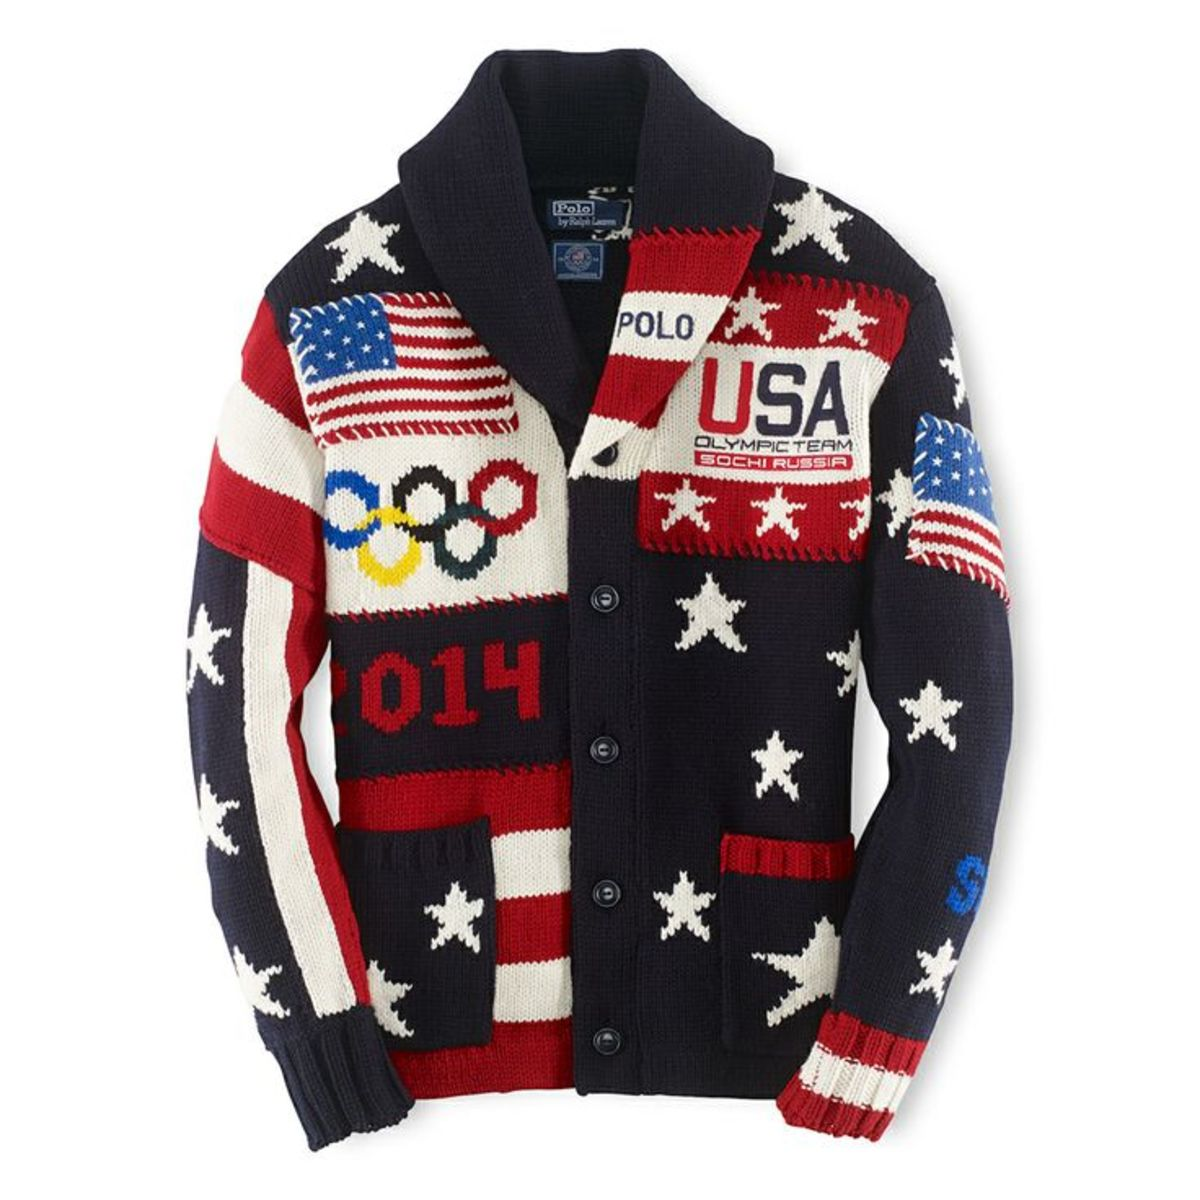 Ralph Lauren Olympic sweater